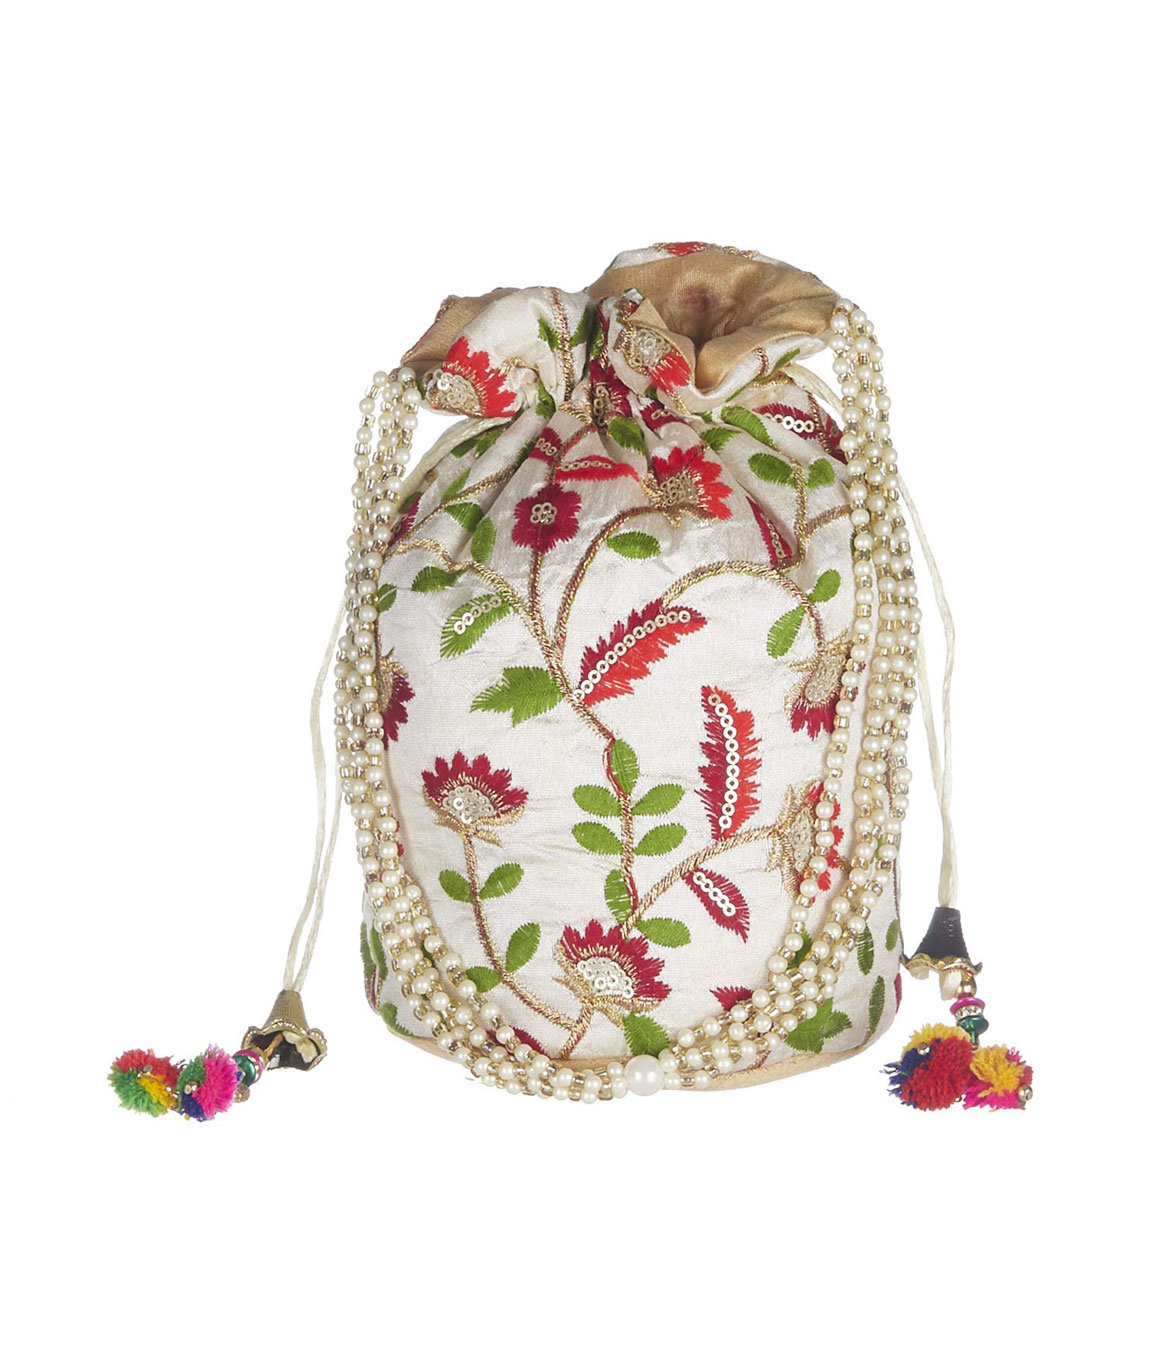 DN Enterprises Latest & Attractive Potli Bags For Women Fancy Potli Bags